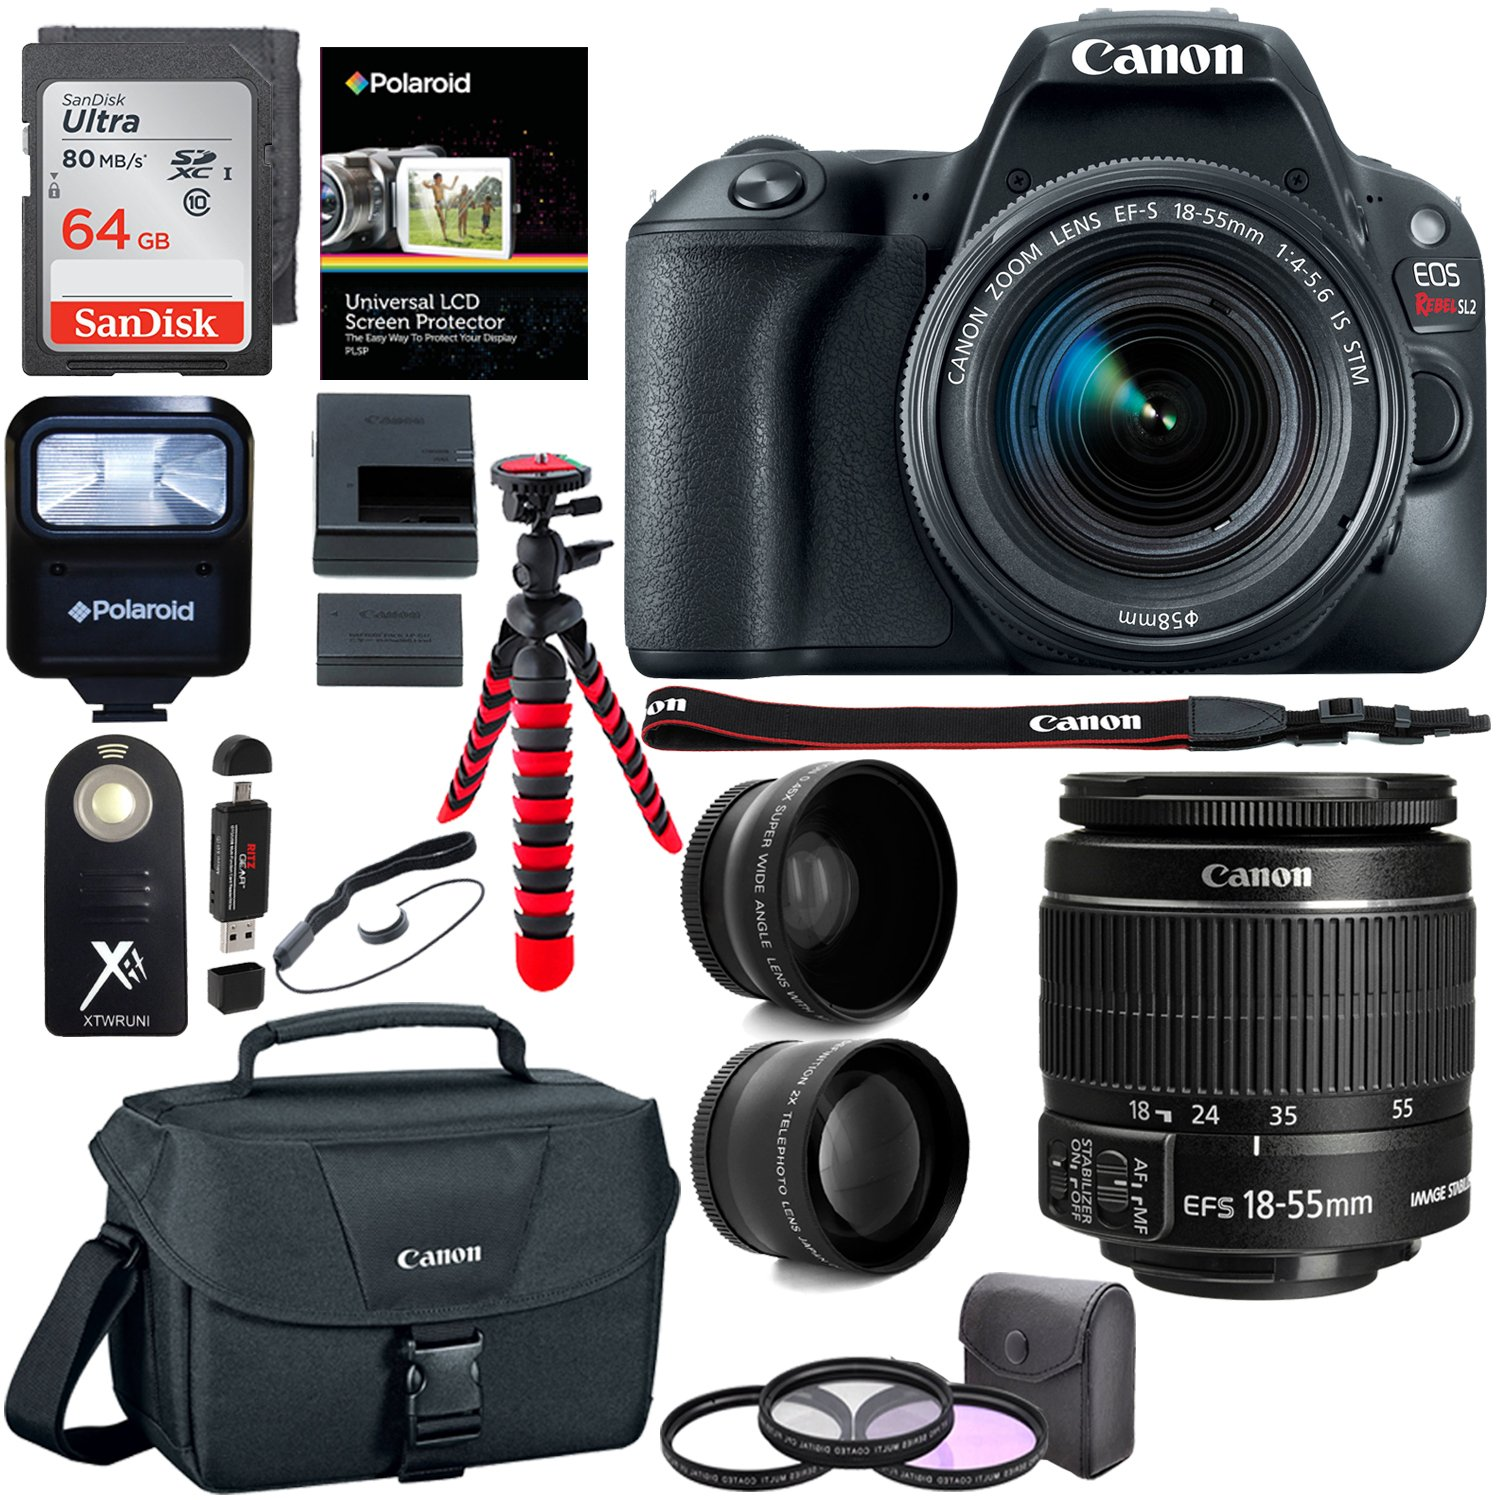 Canon EOS Rebel SL2 DSLR Camera with EF-S 18-55mm STM Lens, Sandisk 64GB Memory Card, Telephoto, Wide Angle Lenses, Filter Kit and Accessory Bundle by Ritz Camera